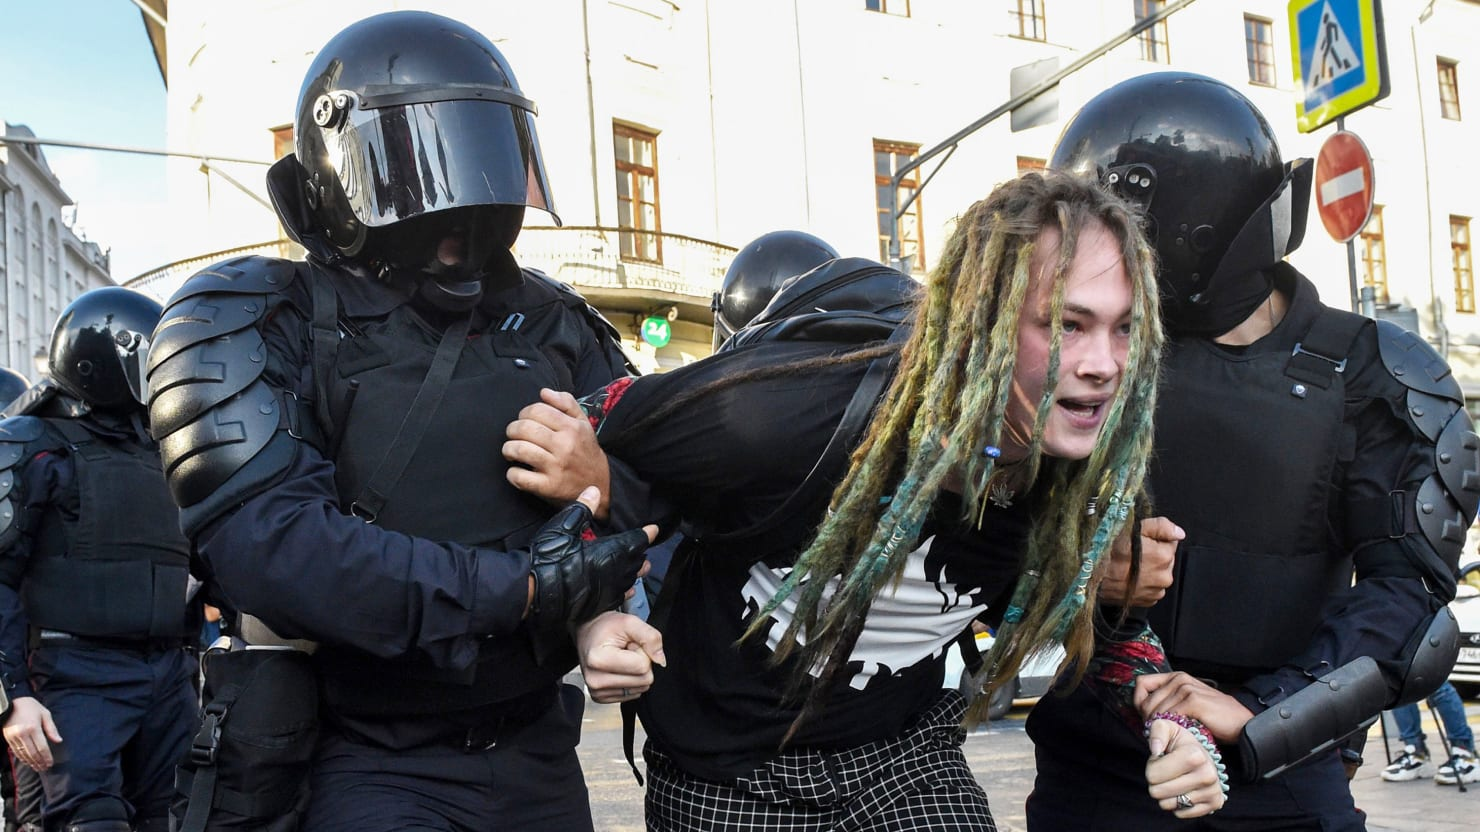 Street Protests Might Bring Down Putin-Or Make Him Even More Dangerous to U.S.